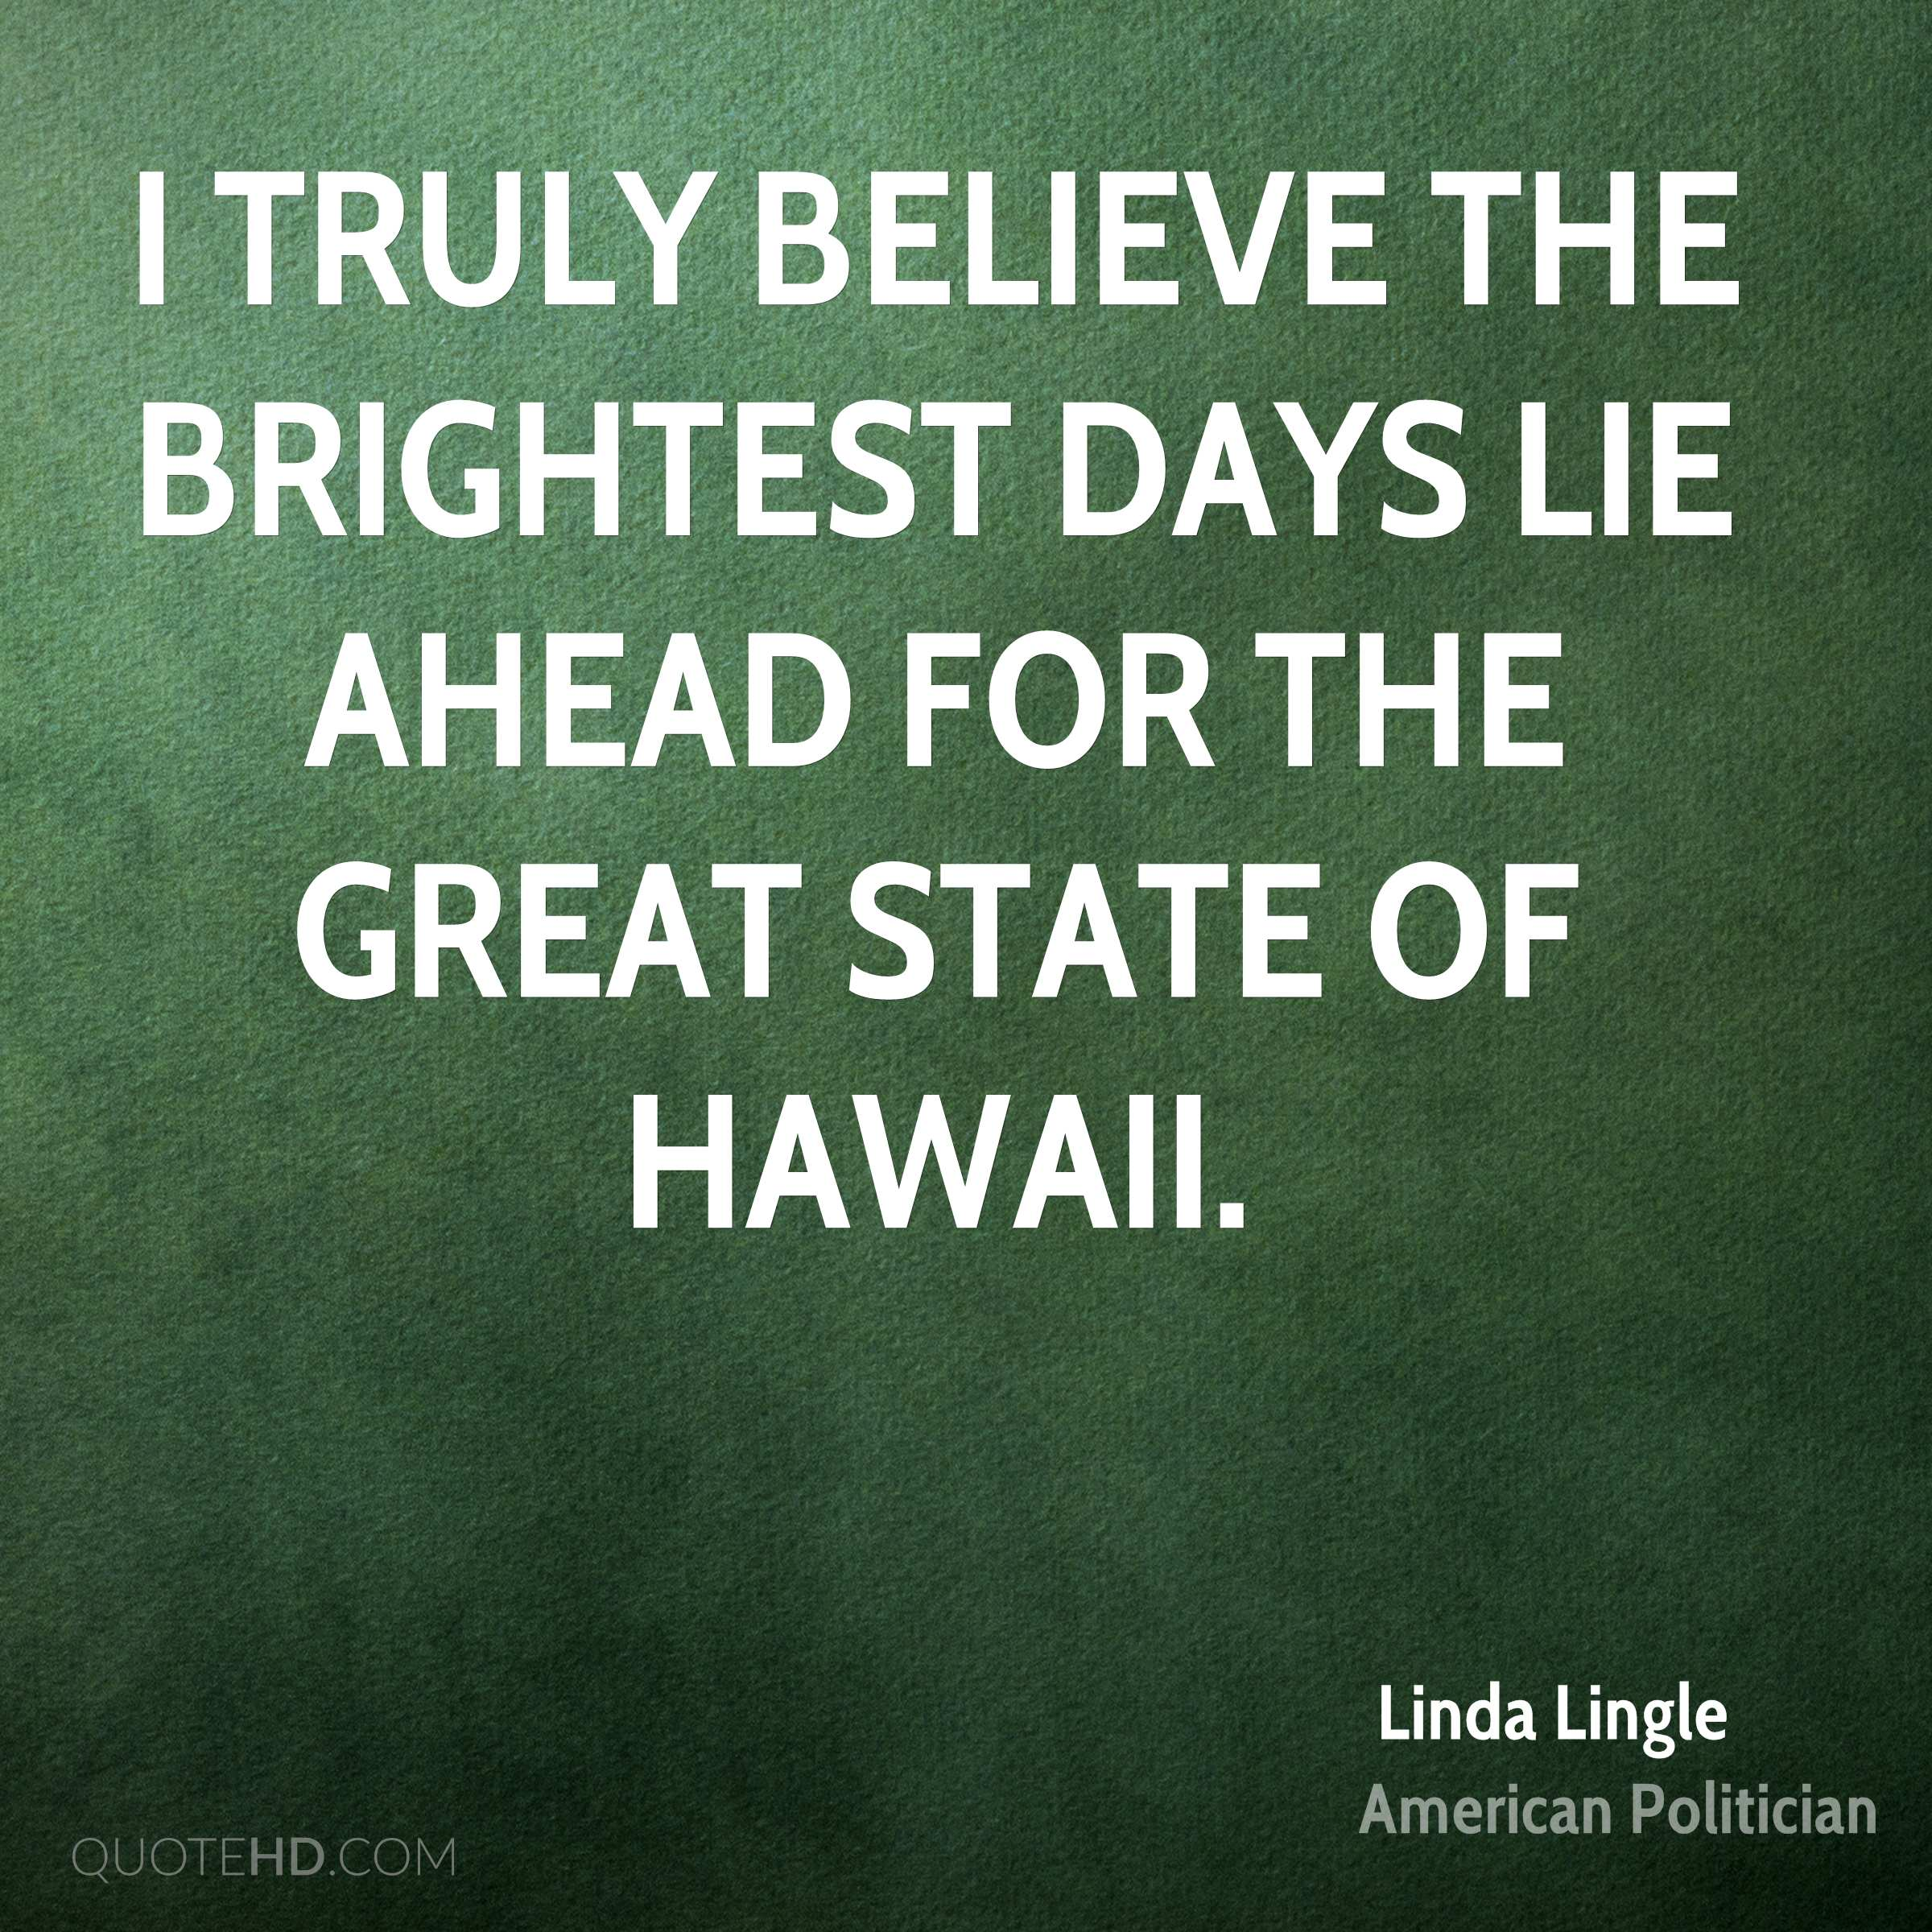 I truly believe the brightest days lie ahead for the Great State of Hawaii.